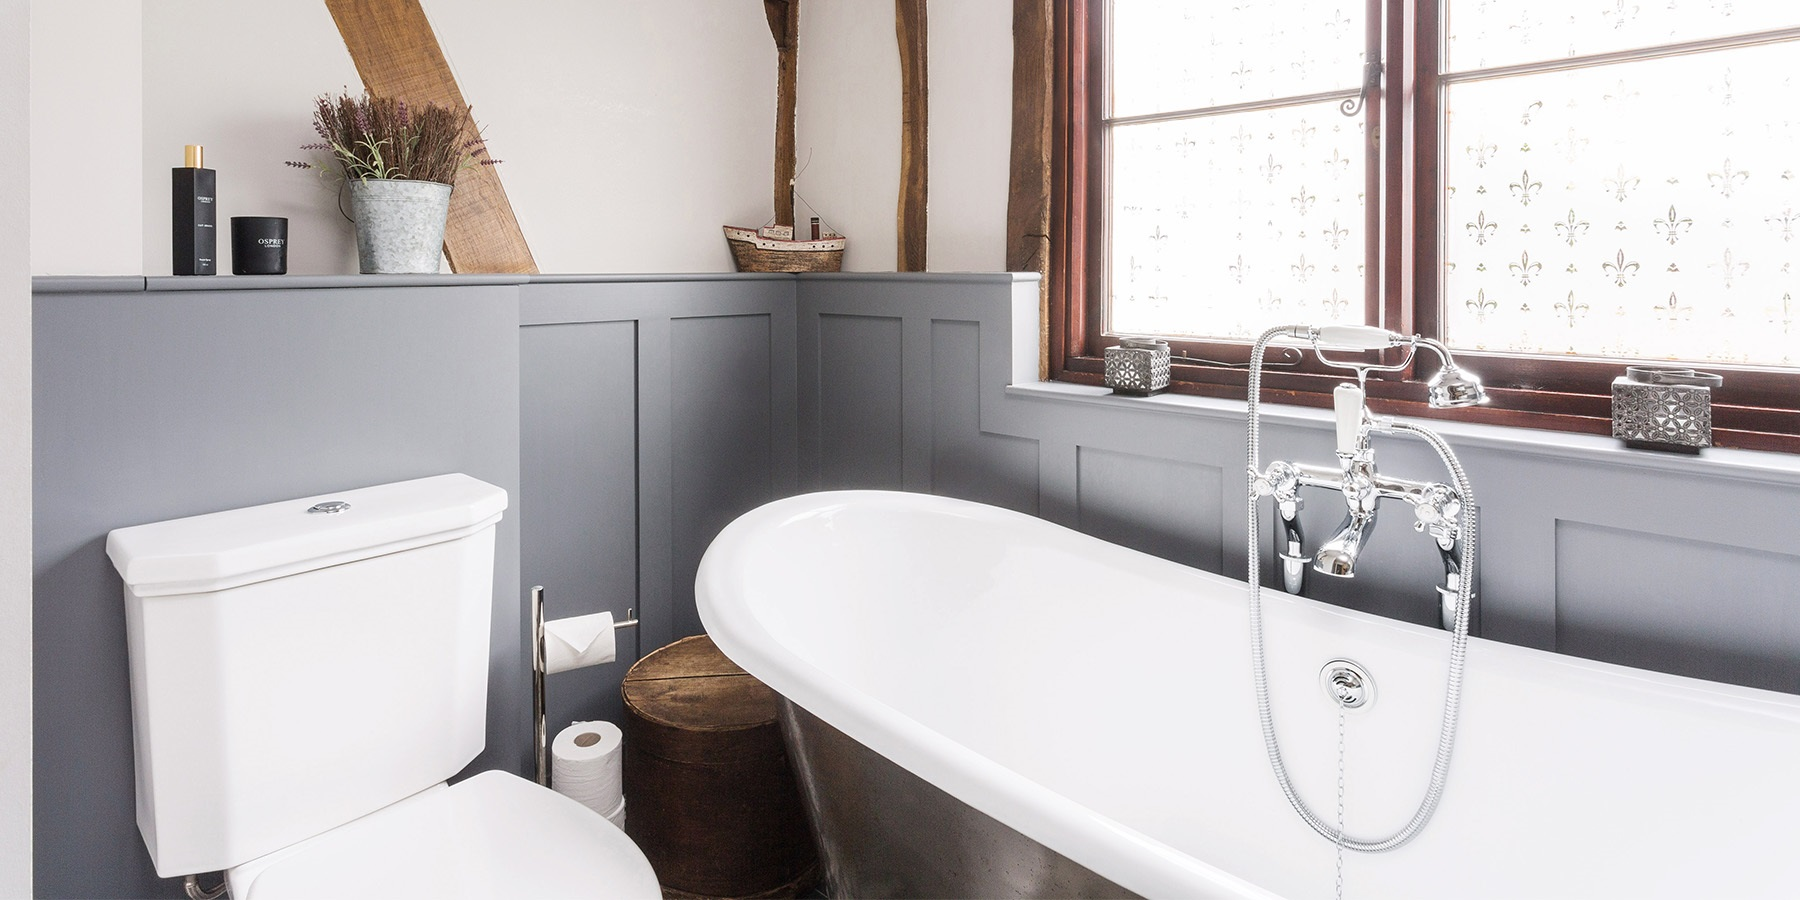 Bespoke Bathroom Furniture - Handmade shaker wall panelling and beautiful bathroom furniture with handmade cast iron roll top bath by Hurlingham.